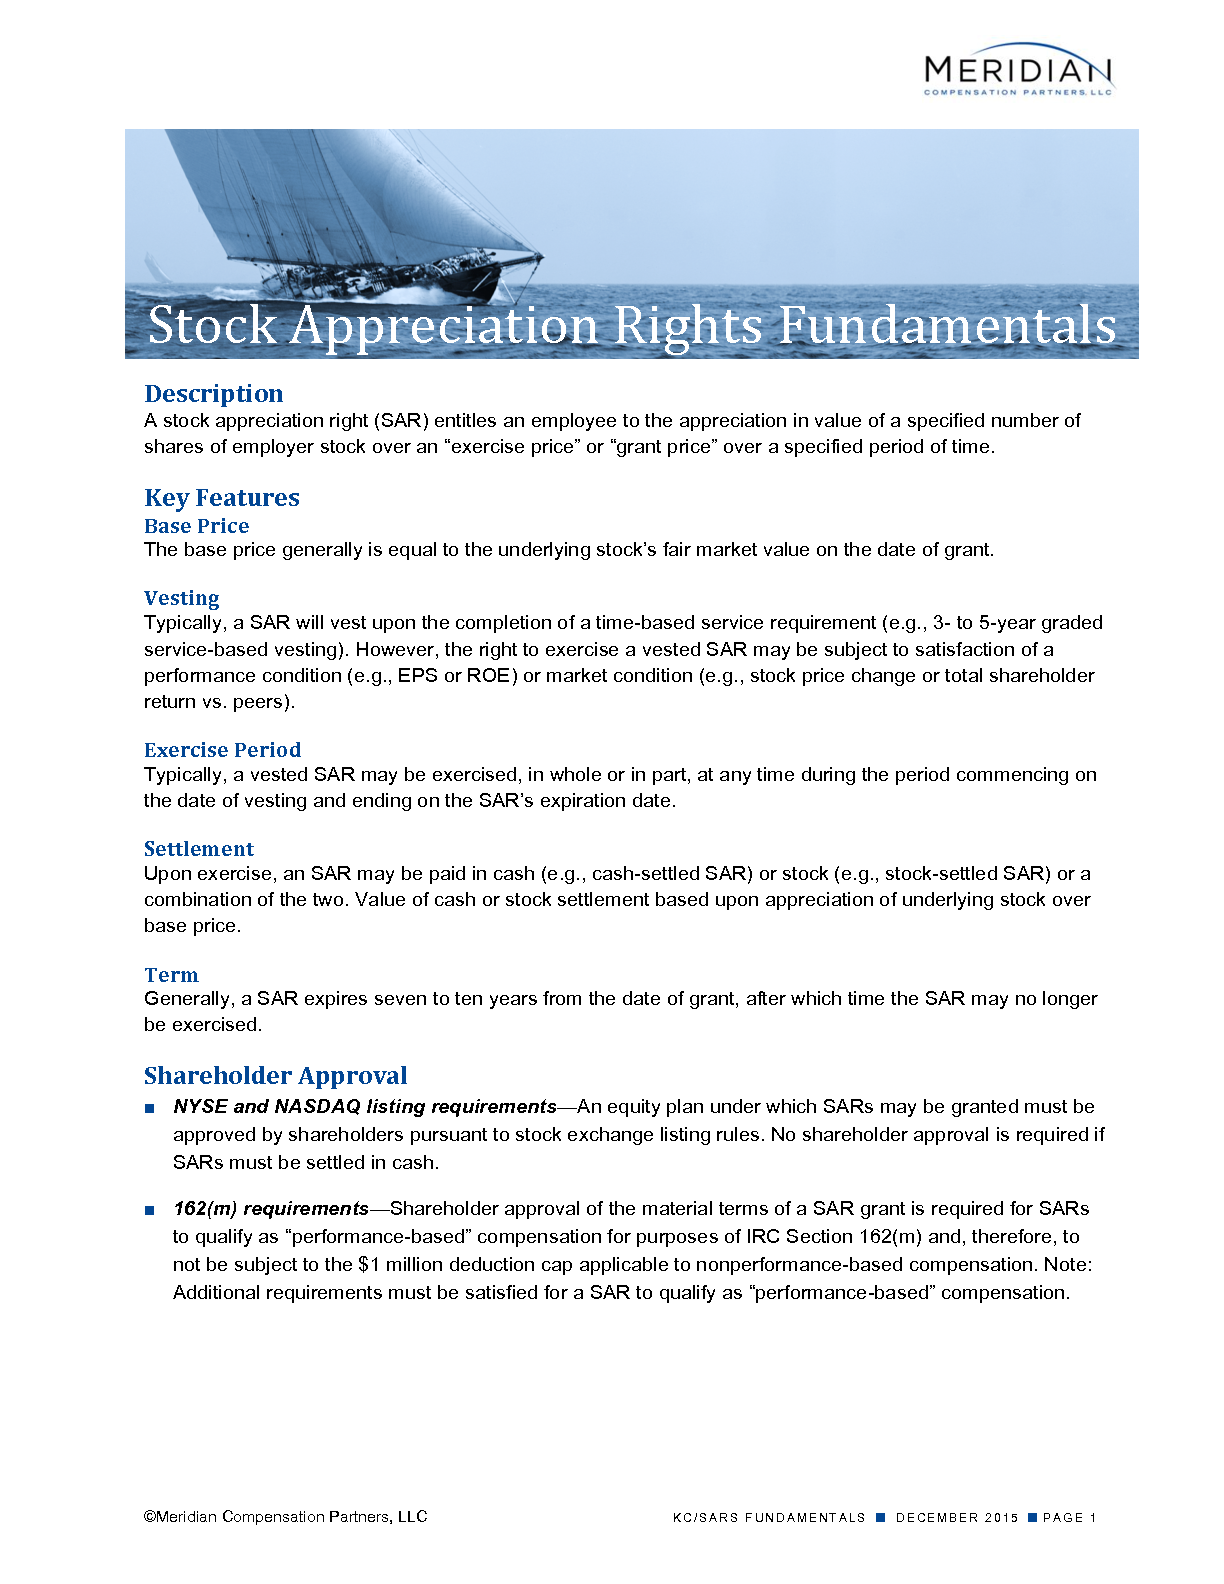 Stock Appreciation Rights Fundamentals (PDF)